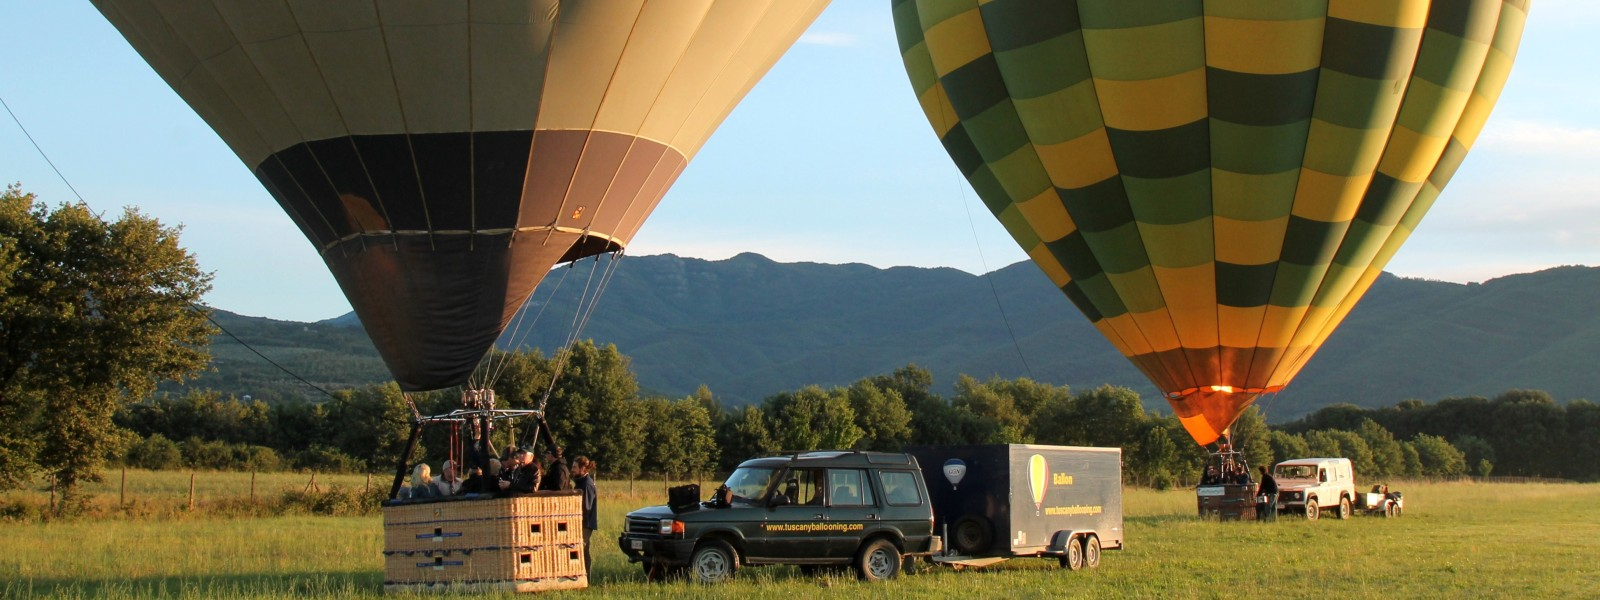 balloons-ready-for-family-group-excursion